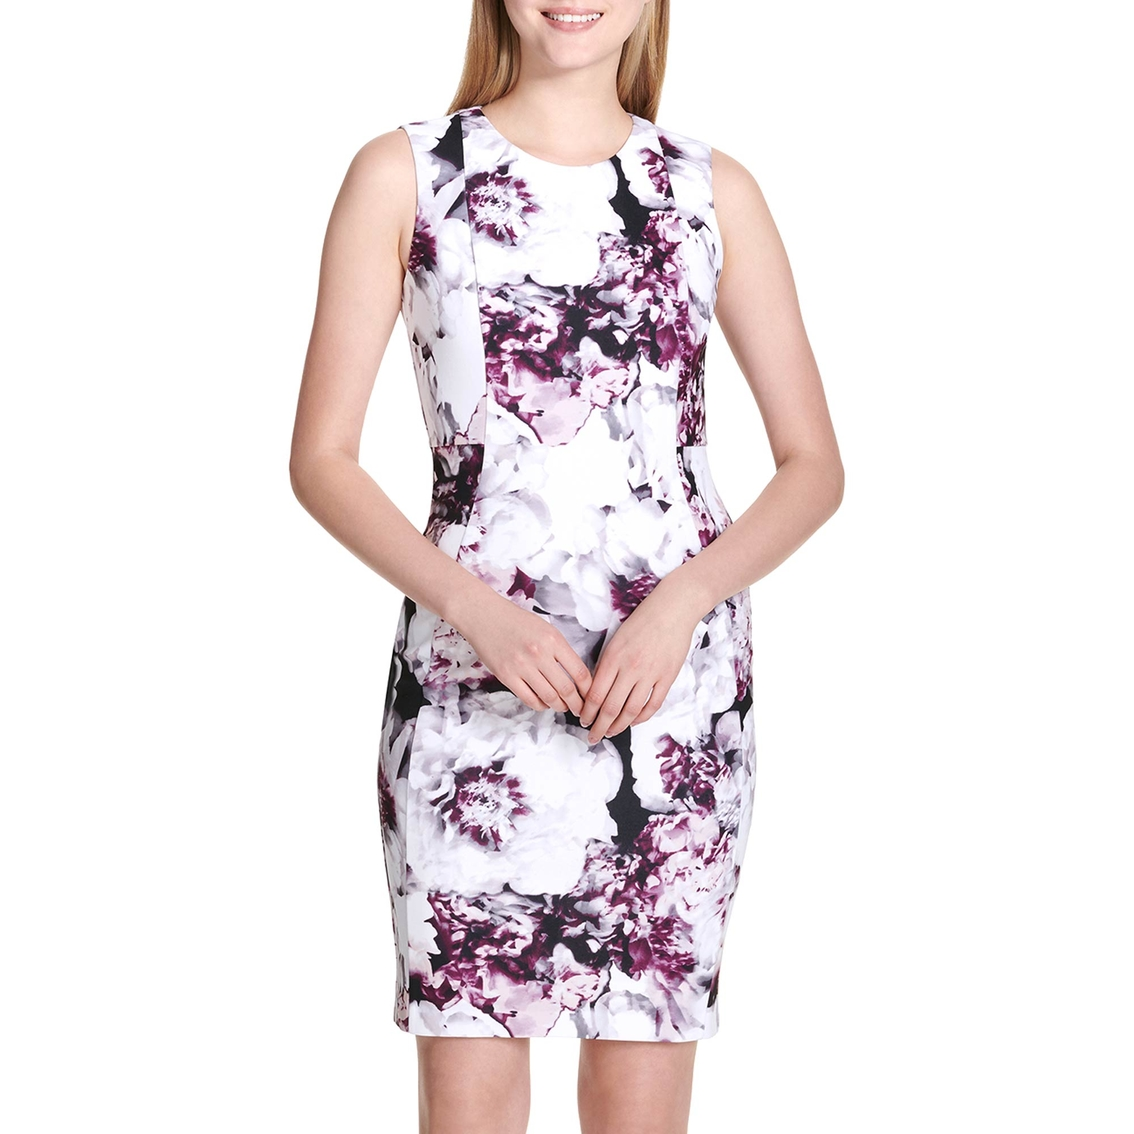 91912efe6bcd5 Calvin Klein Collection Printed Sheath Dress With Seams